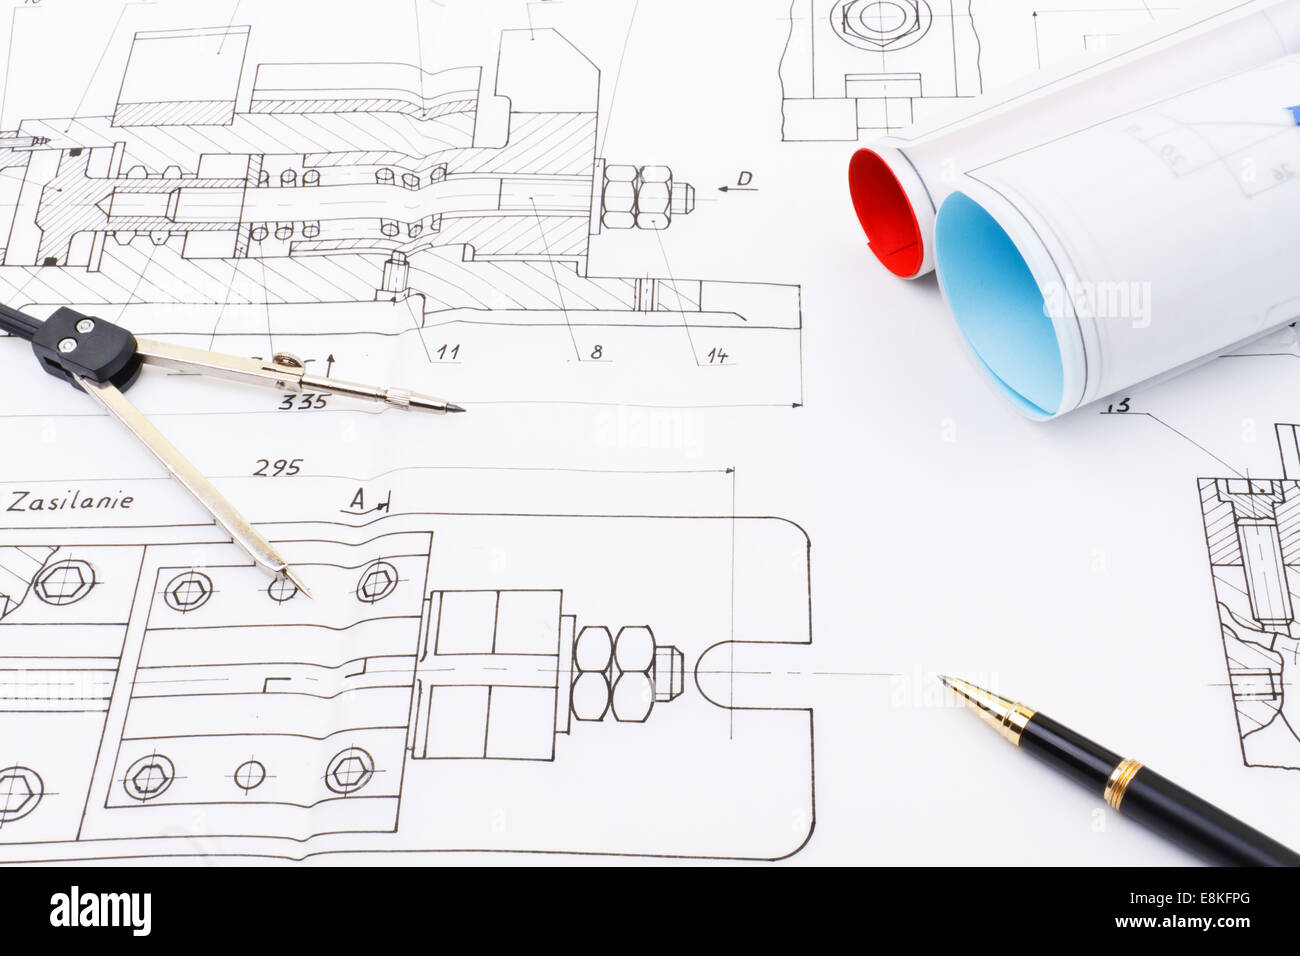 Blueprint drawing project of industry detail like bolt screw with blueprint drawing project of industry detail like bolt screw with compasses engineer measurement instrument and black ballpoint malvernweather Images